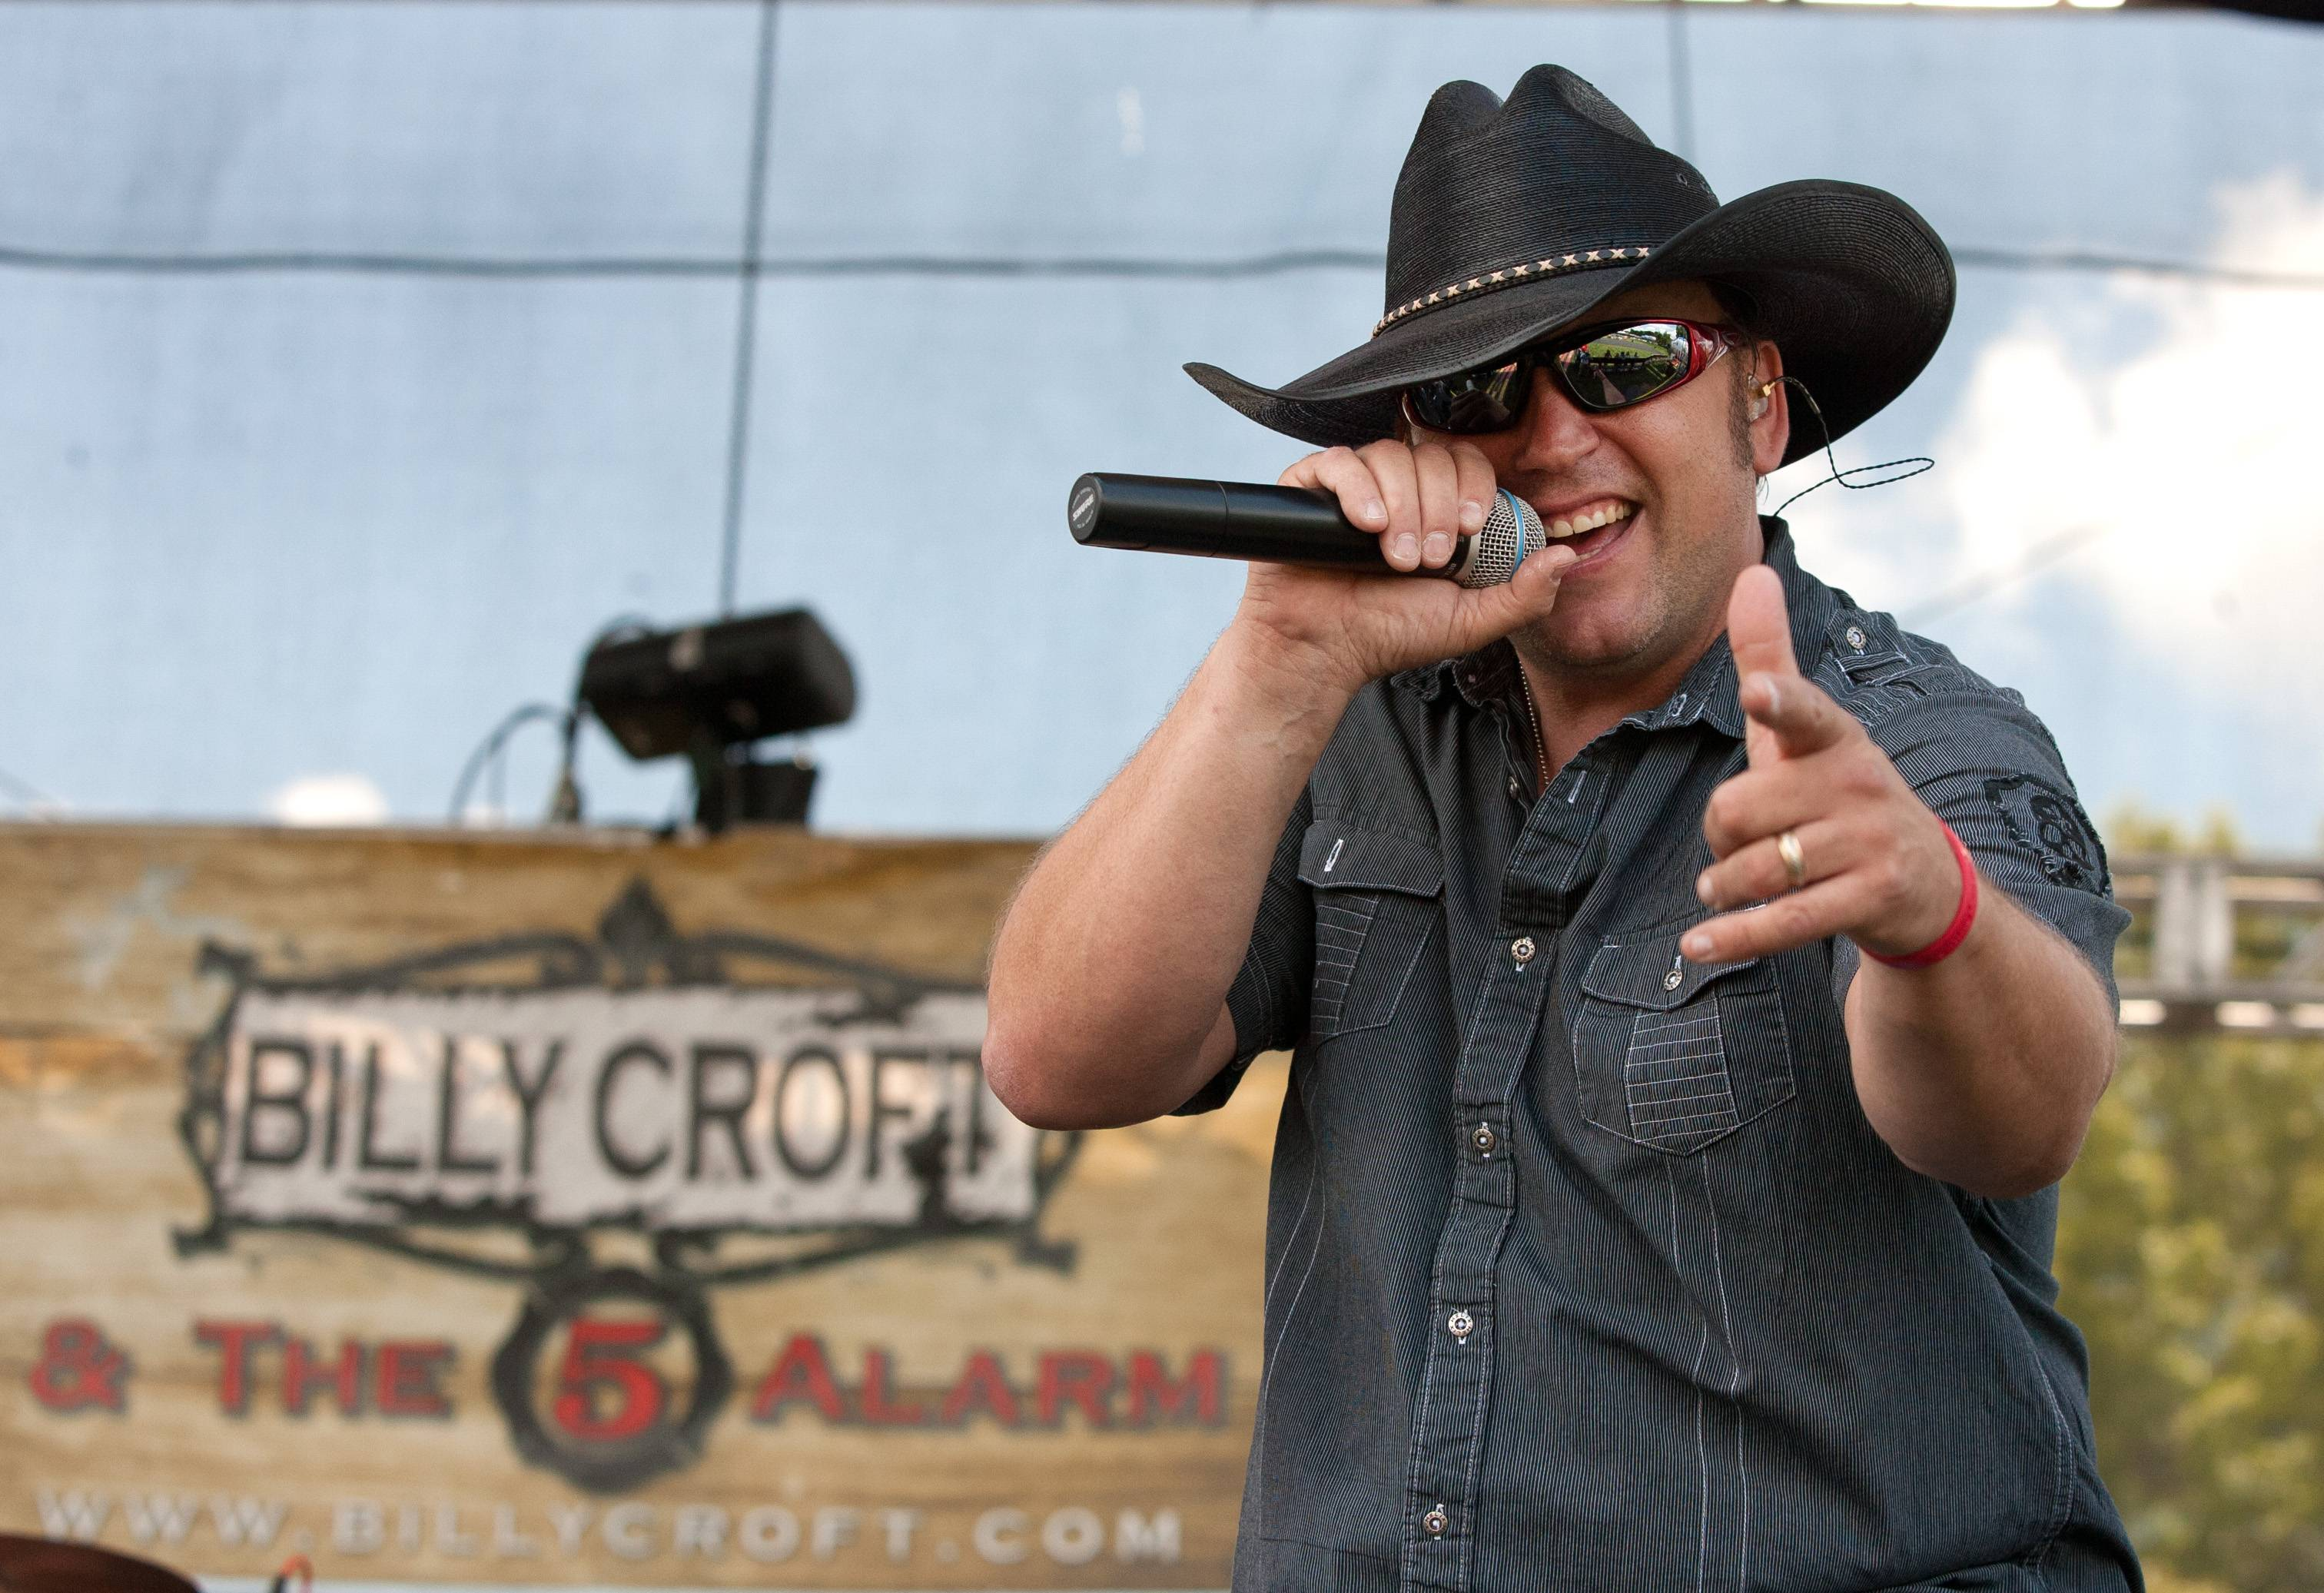 Billy Croft and the 5 Alarm will perform this weekend as part of Villa Park's Oktoberfest.